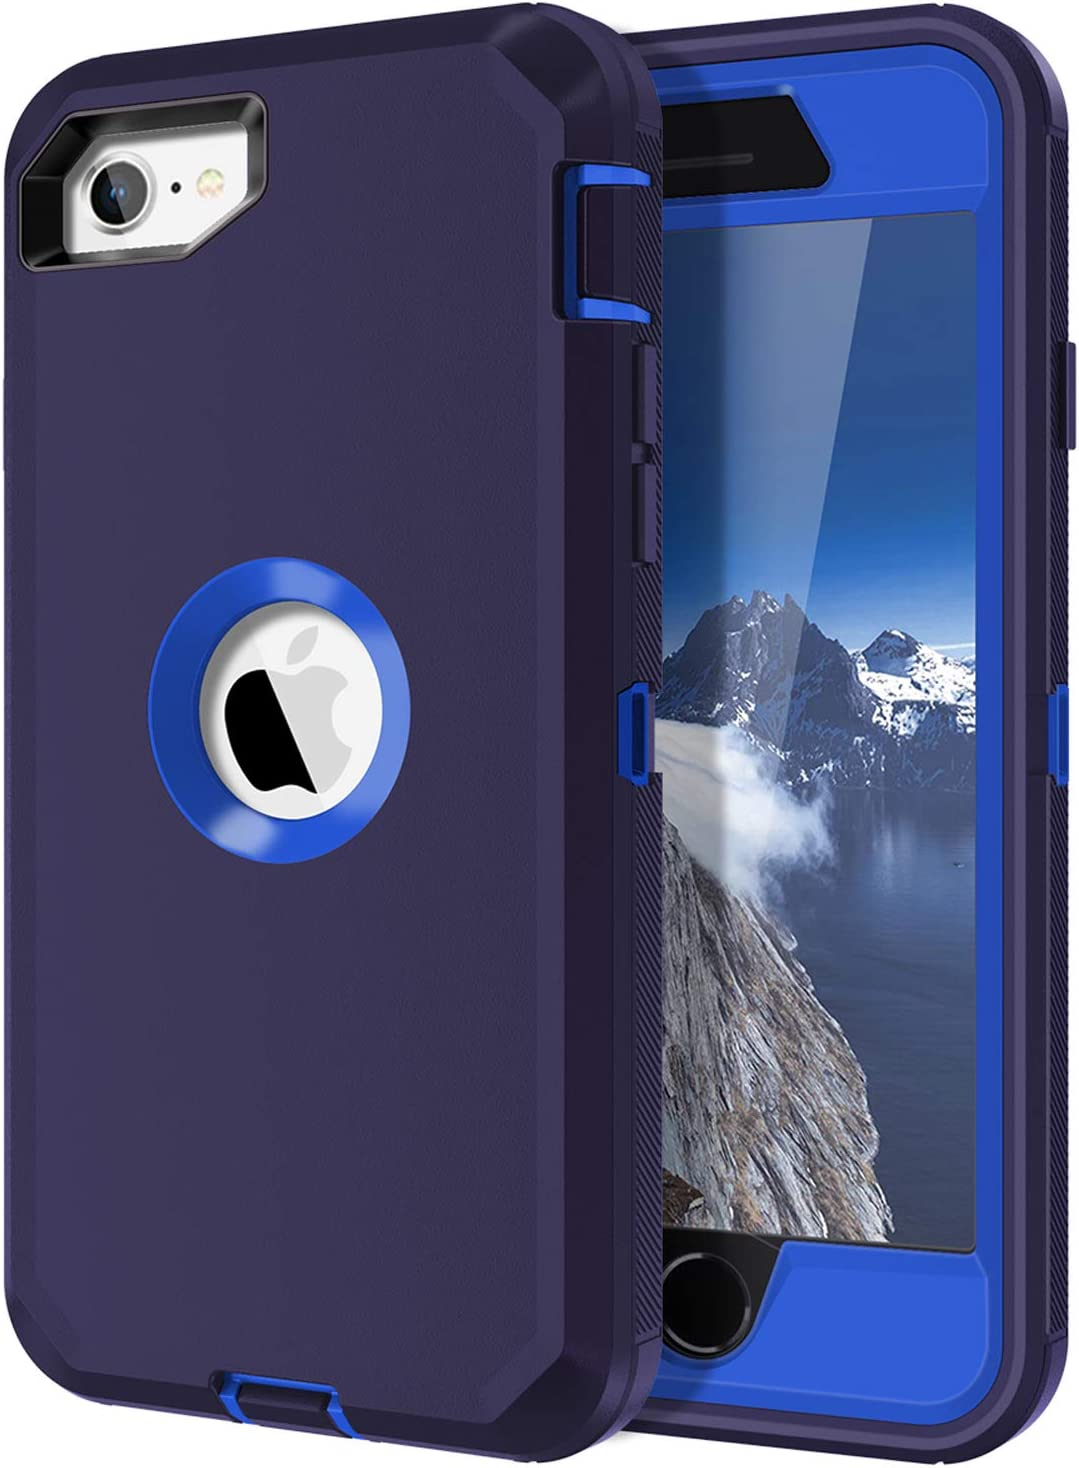 I-HONVA for iPhone SE 2020 Case Built-in Screen Protector Shockproof Dust/Drop Proof 3-Layer Full Body Protection Rugged Heavy Duty Durable Cover Case for Apple iPhone SE (2nd Gen) 4.7-inch, Navy Blue